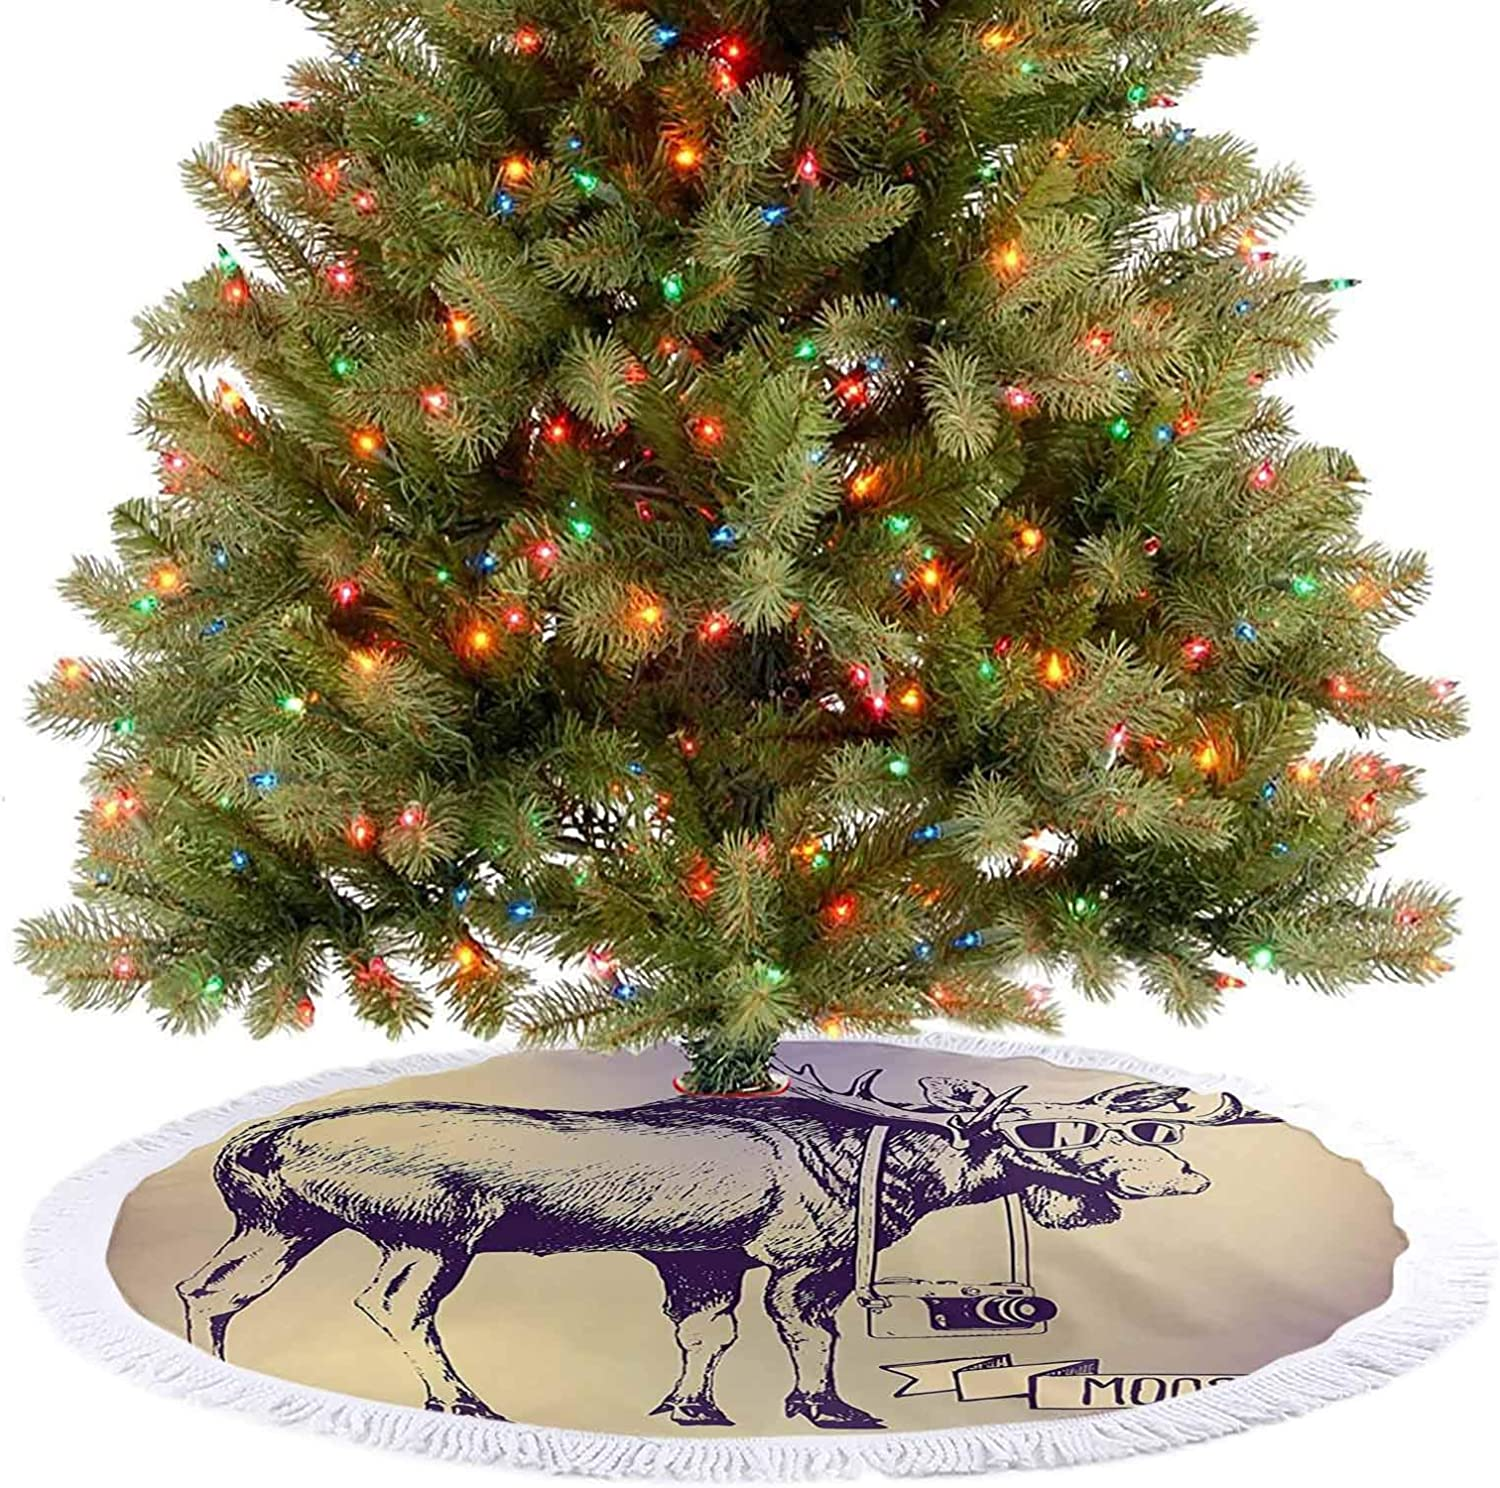 Merry Christmas Tree Skirt Deer with Shades Sunglasses and Camera Vintage Ombre Design Funny Animal Art Purple Holiday Party Decoration Makes Your Christmas Tree More Beautiful - 30 Inch